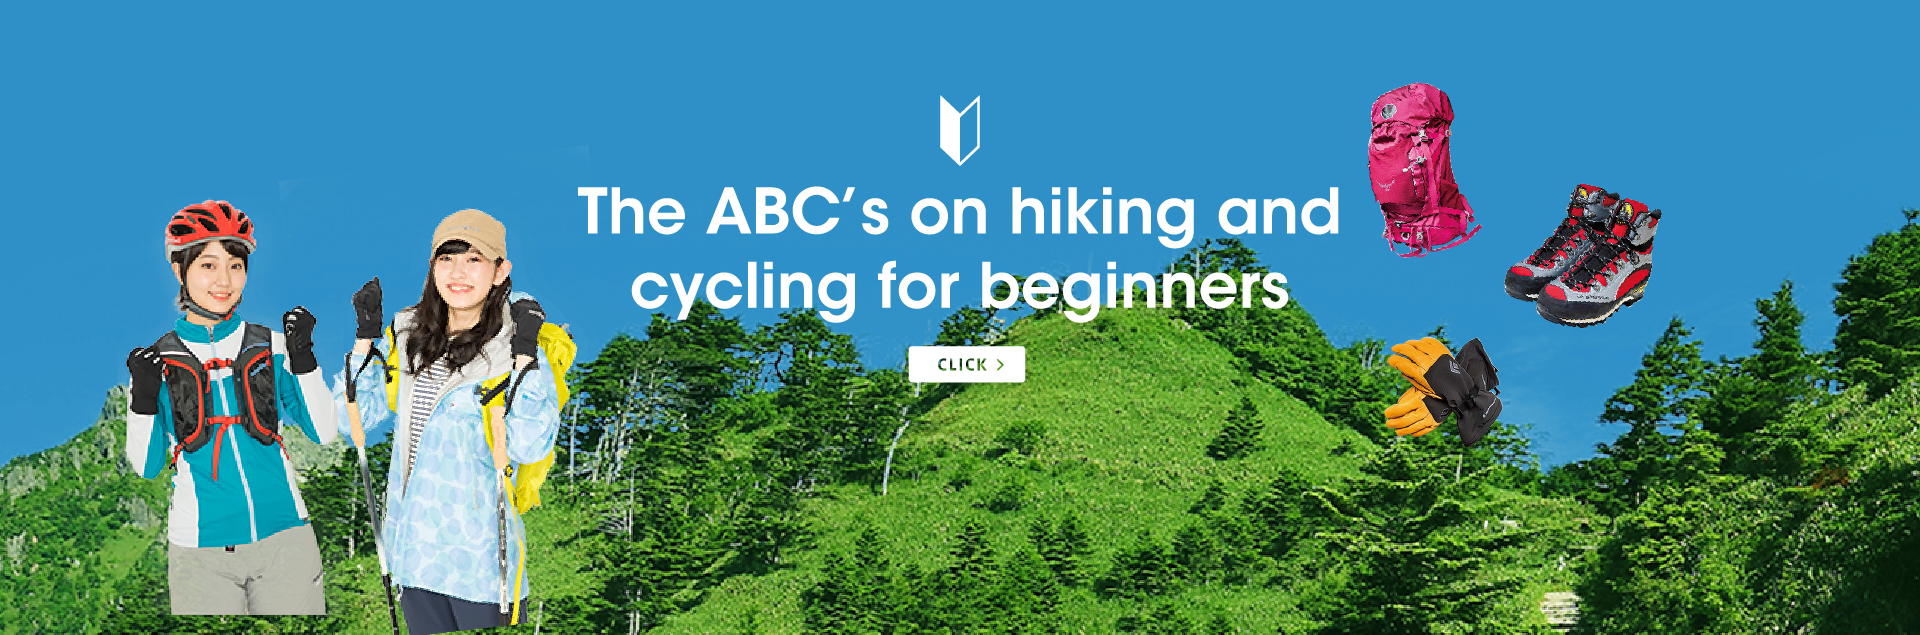 The ABC's on hiking and cycling for beginners